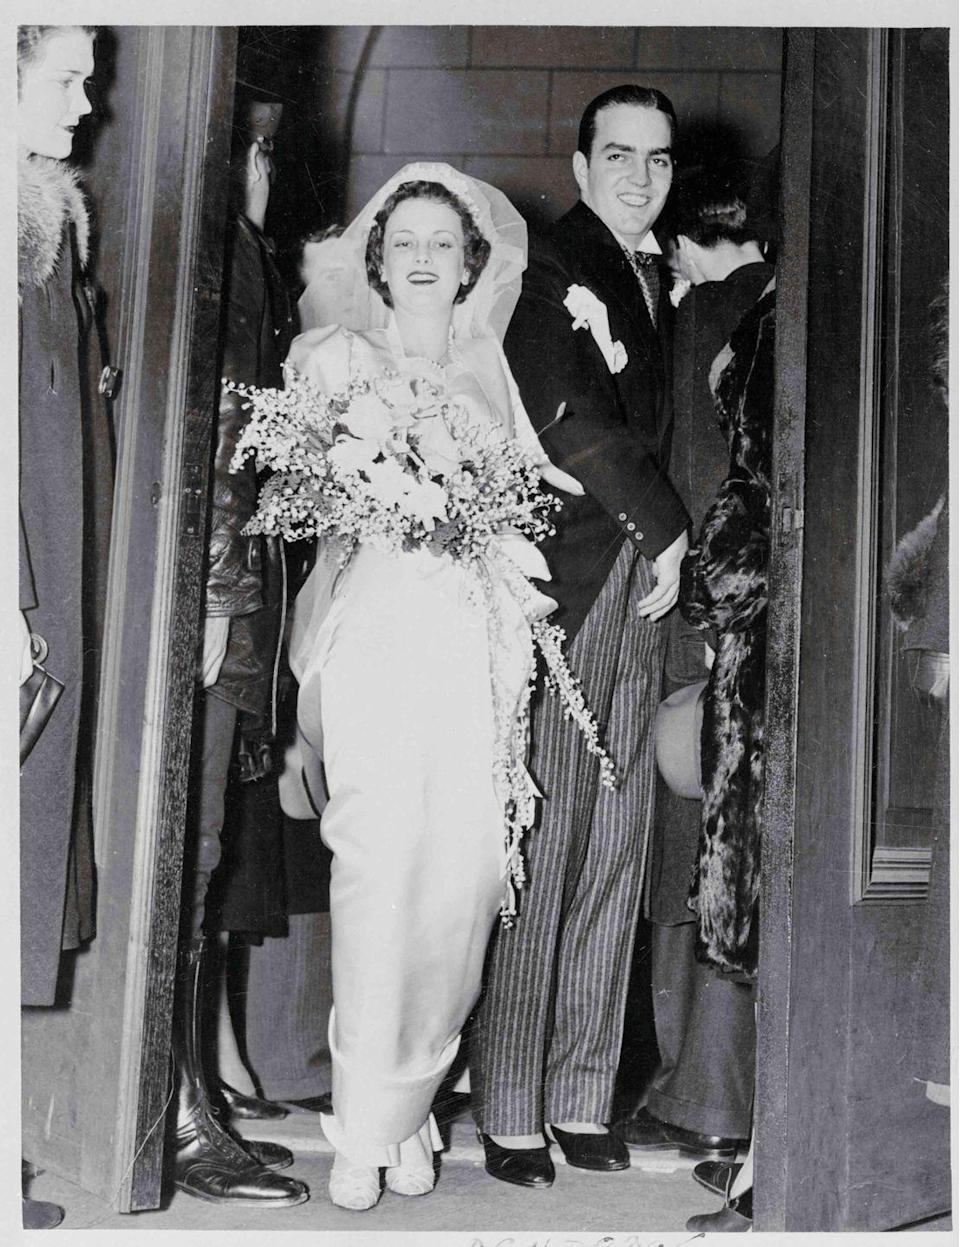 """<p>In what was called Atlanta's wedding of the year, Catherine Wood Campbell married Randolph Apperson Hearst in 1938. Catherine was the only daughter of Morton Campbell, a wealthy telephone company executive while Randolph was the son of William Randolph Hearst, a media mogul (full disclosure: <em>Marie Claire</em> is a subsidiary of The Hearst Corporation). The wedding had nine bridesmaids and 15 groomsmen. The bride wore a <a href=""""https://people.com/archive/pattys-free-but-randolph-left-and-catherine-hearst-wonders-whats-next-vol-11-no-14/"""" rel=""""nofollow noopener"""" target=""""_blank"""" data-ylk=""""slk:white satin gown and tulle veil"""" class=""""link rapid-noclick-resp"""">white satin gown and tulle veil</a>. The couple went on to have five daughters: Catherine, Virginia, Patty, Anne, and Vicki. </p>"""